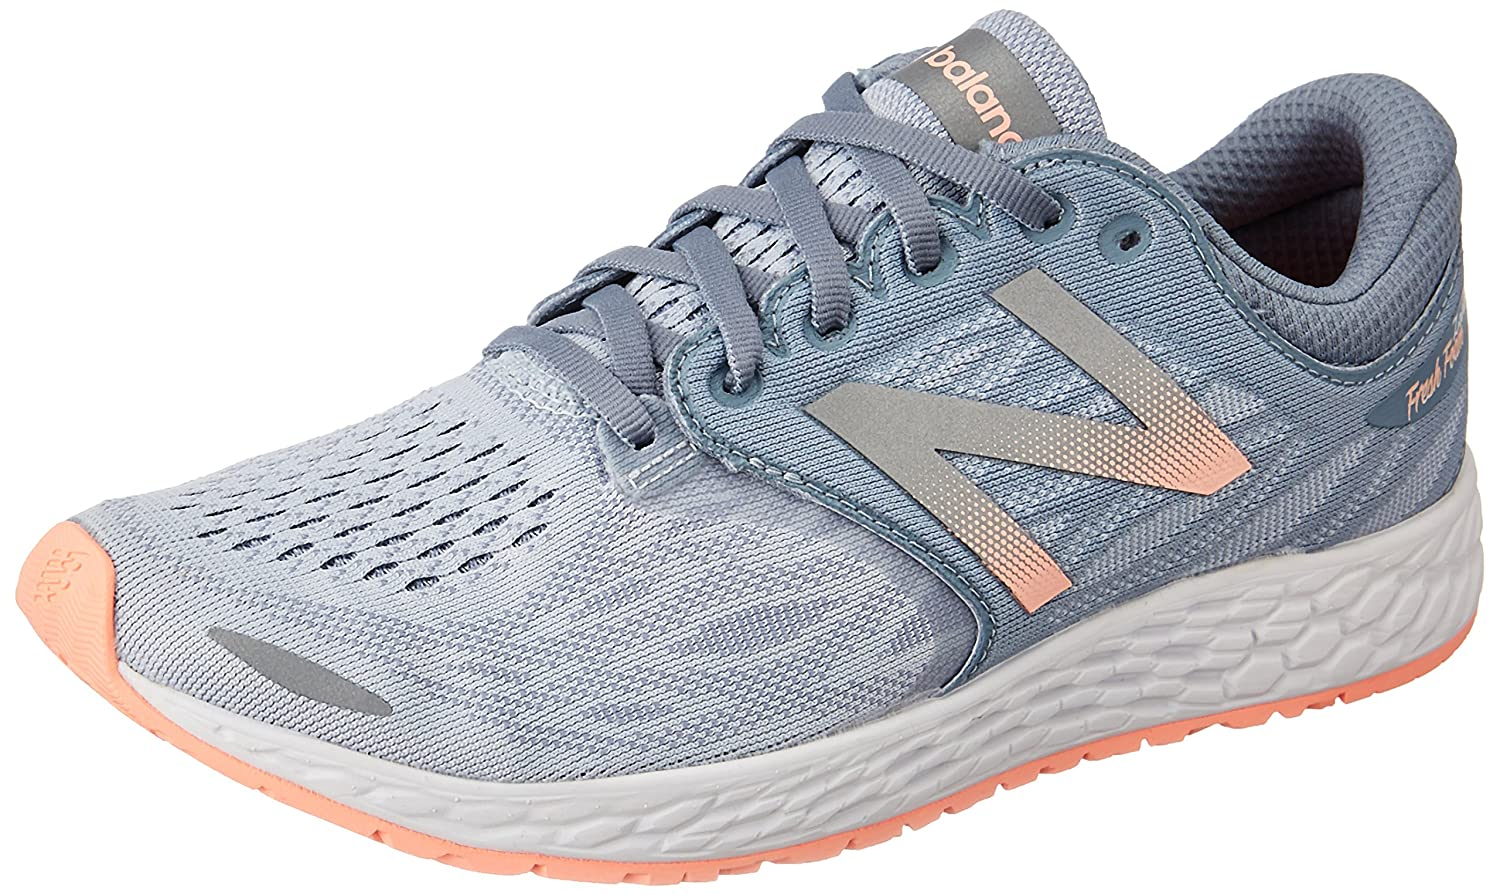 New Balance Women's Zante V3 Running-Shoes B01FSJ5KTI 6 B(M) US|Reflection/Rose Gold